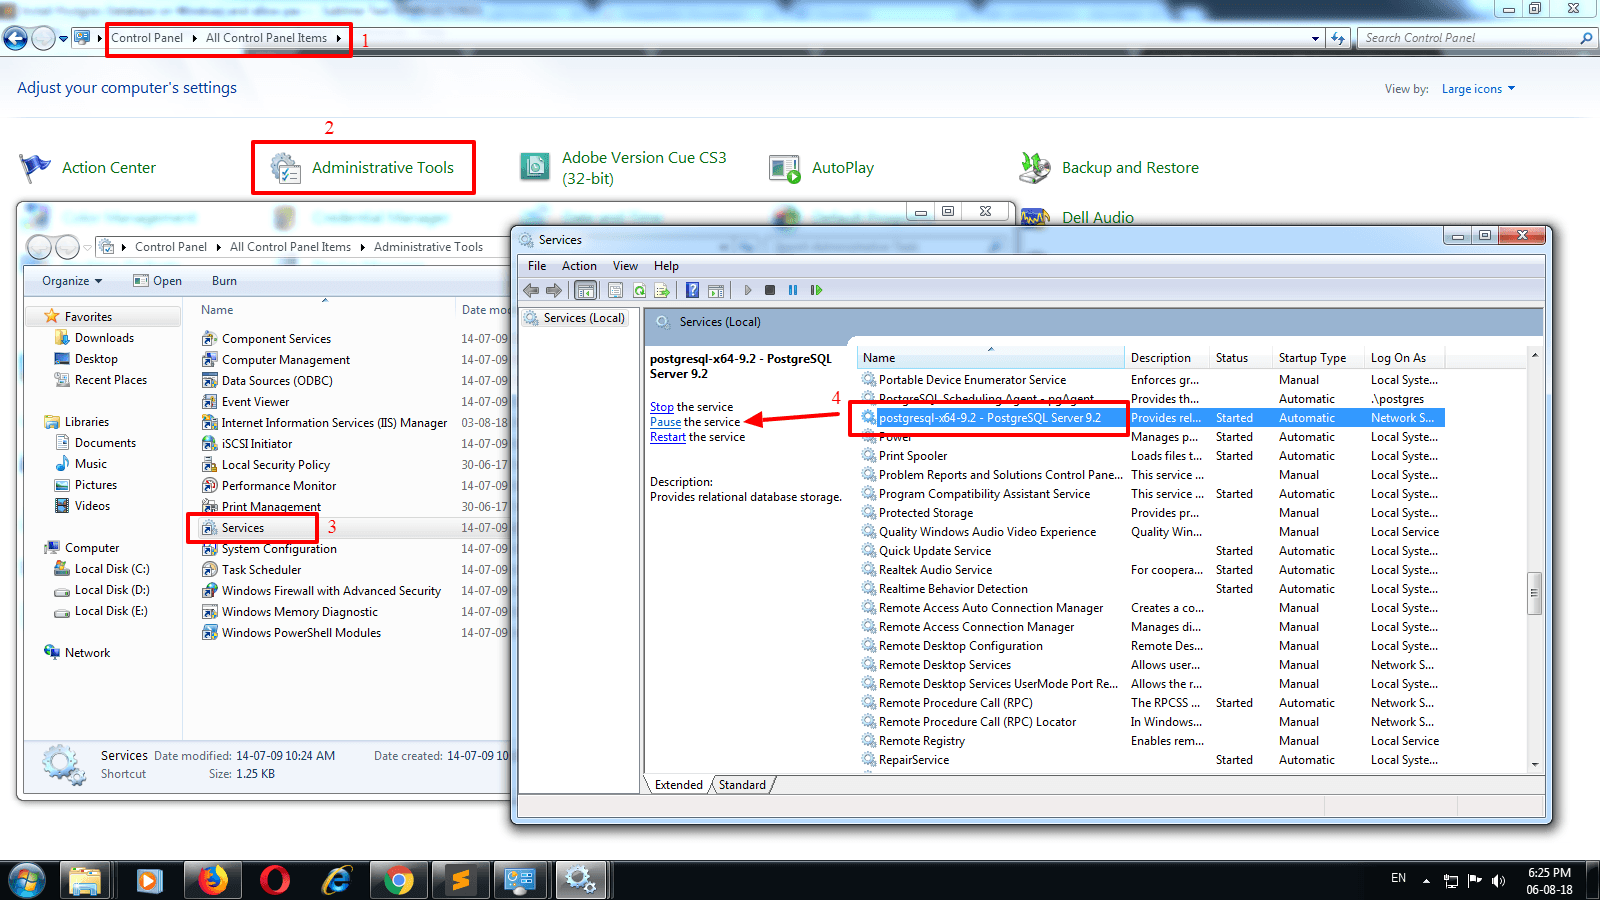 Install Postgres database on Windows and allow password less access